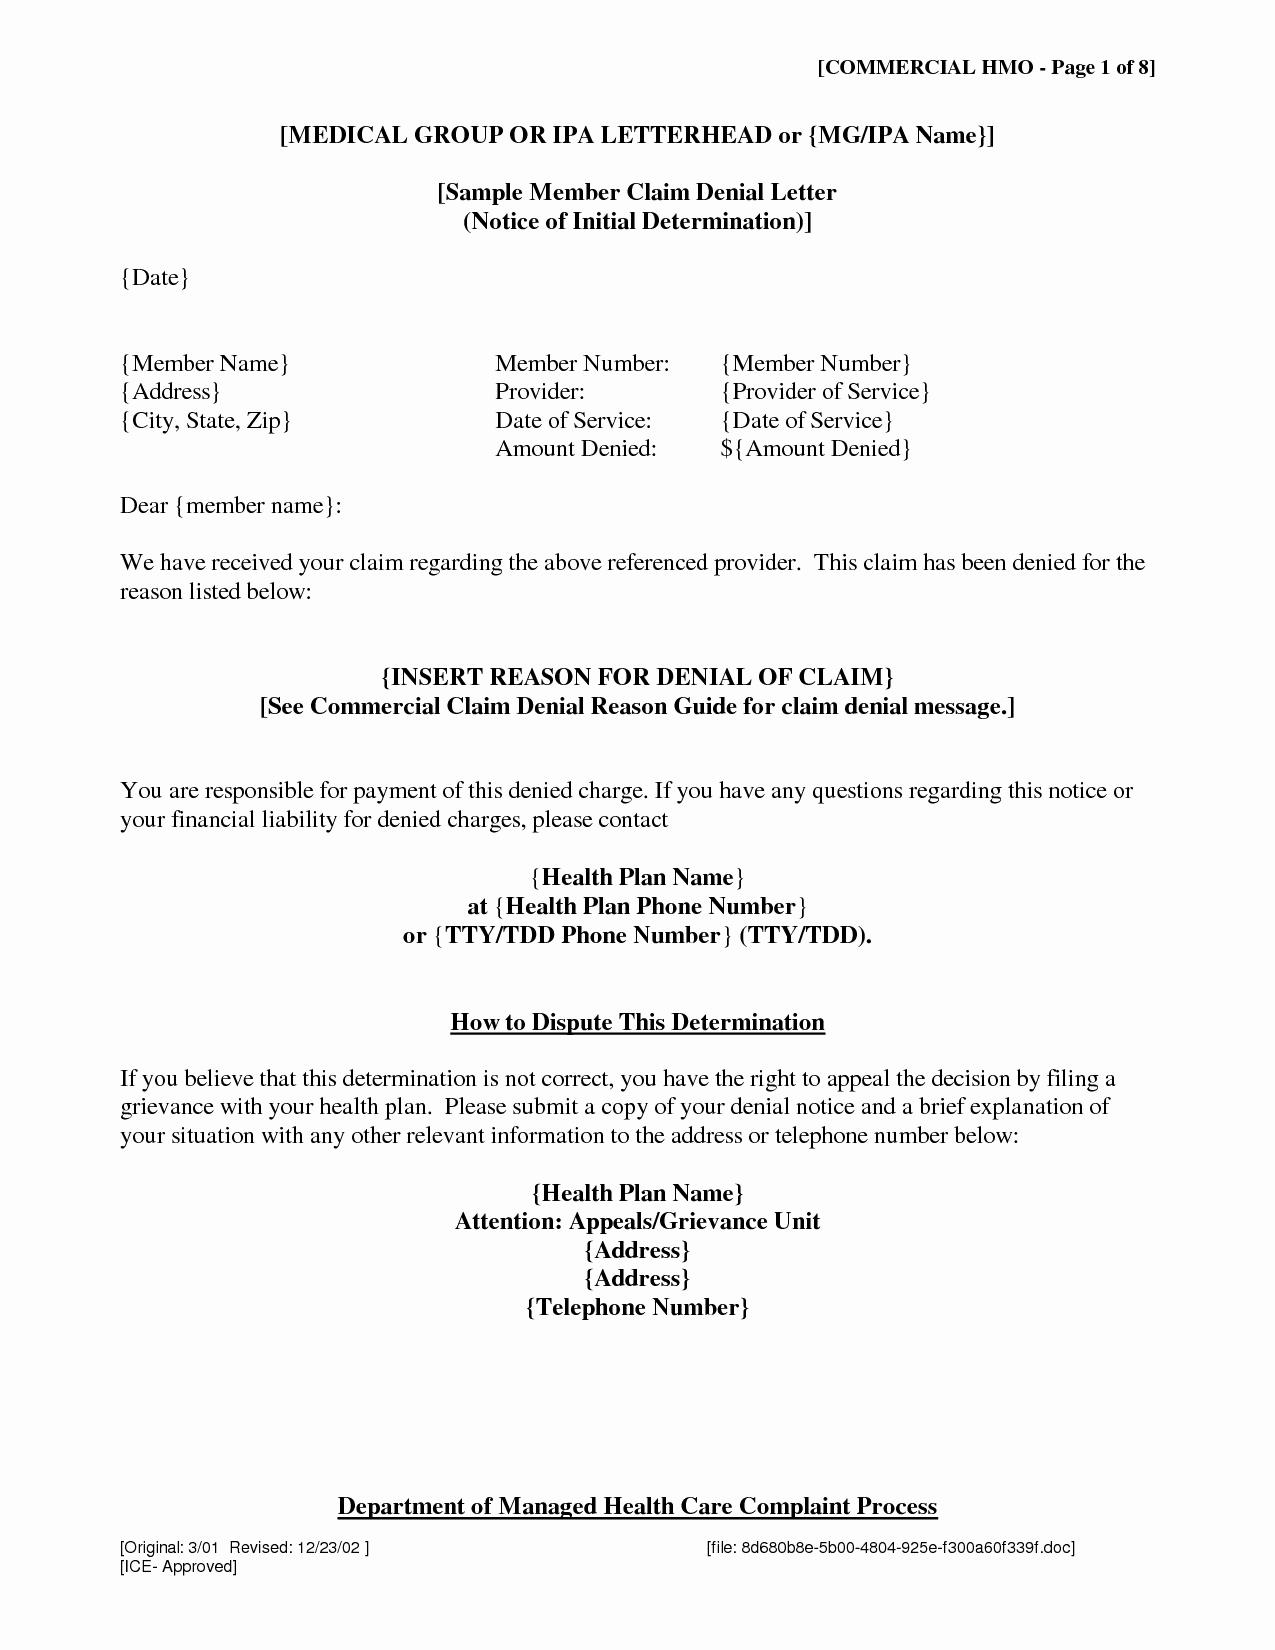 Insurance Denial Letter Free Printable Documents